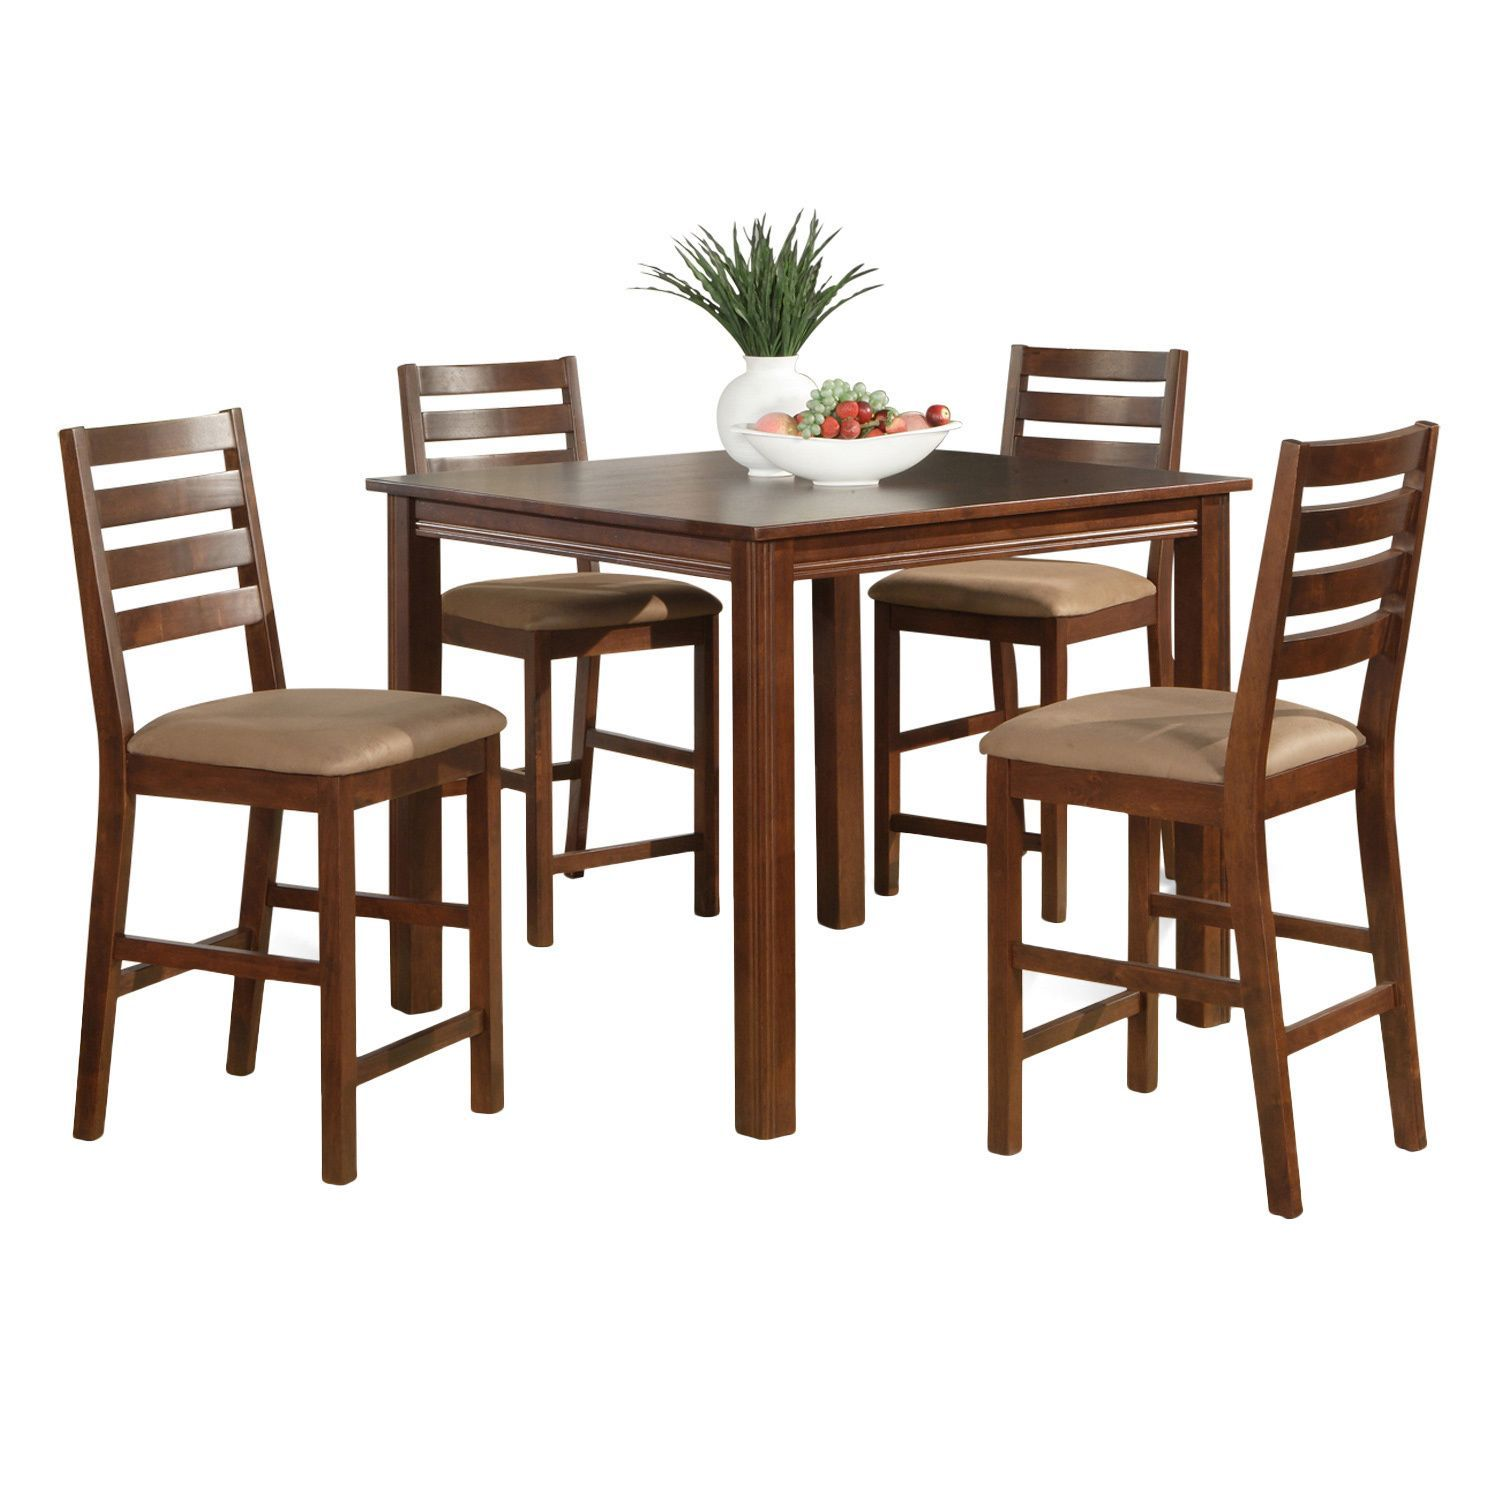 5-piece Gathering Table Set-Counter Height Square Table 4 Chairs  sc 1 st  Pinterest & 5-piece Gathering Table Set-Counter Height Square Table 4 Chairs ...